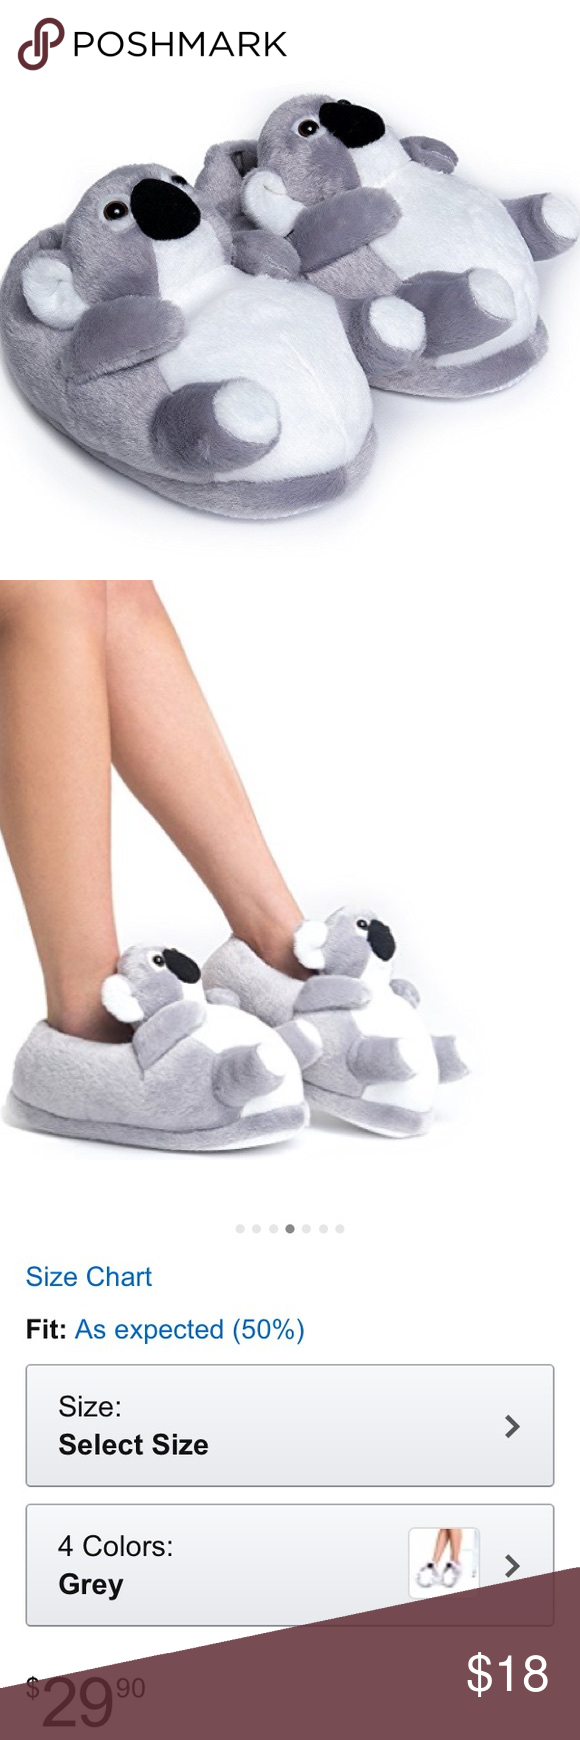 Koala kids slippers L/XL US 3.5-6 kids youth This comes with his brand-new koala bear slippers. They are a size large/extra large. They cost $30 on Am@zon. It says A youth large/extra large is good for US 3 1/2 up to size 6 in kids. cute to the core Shoes Slippers